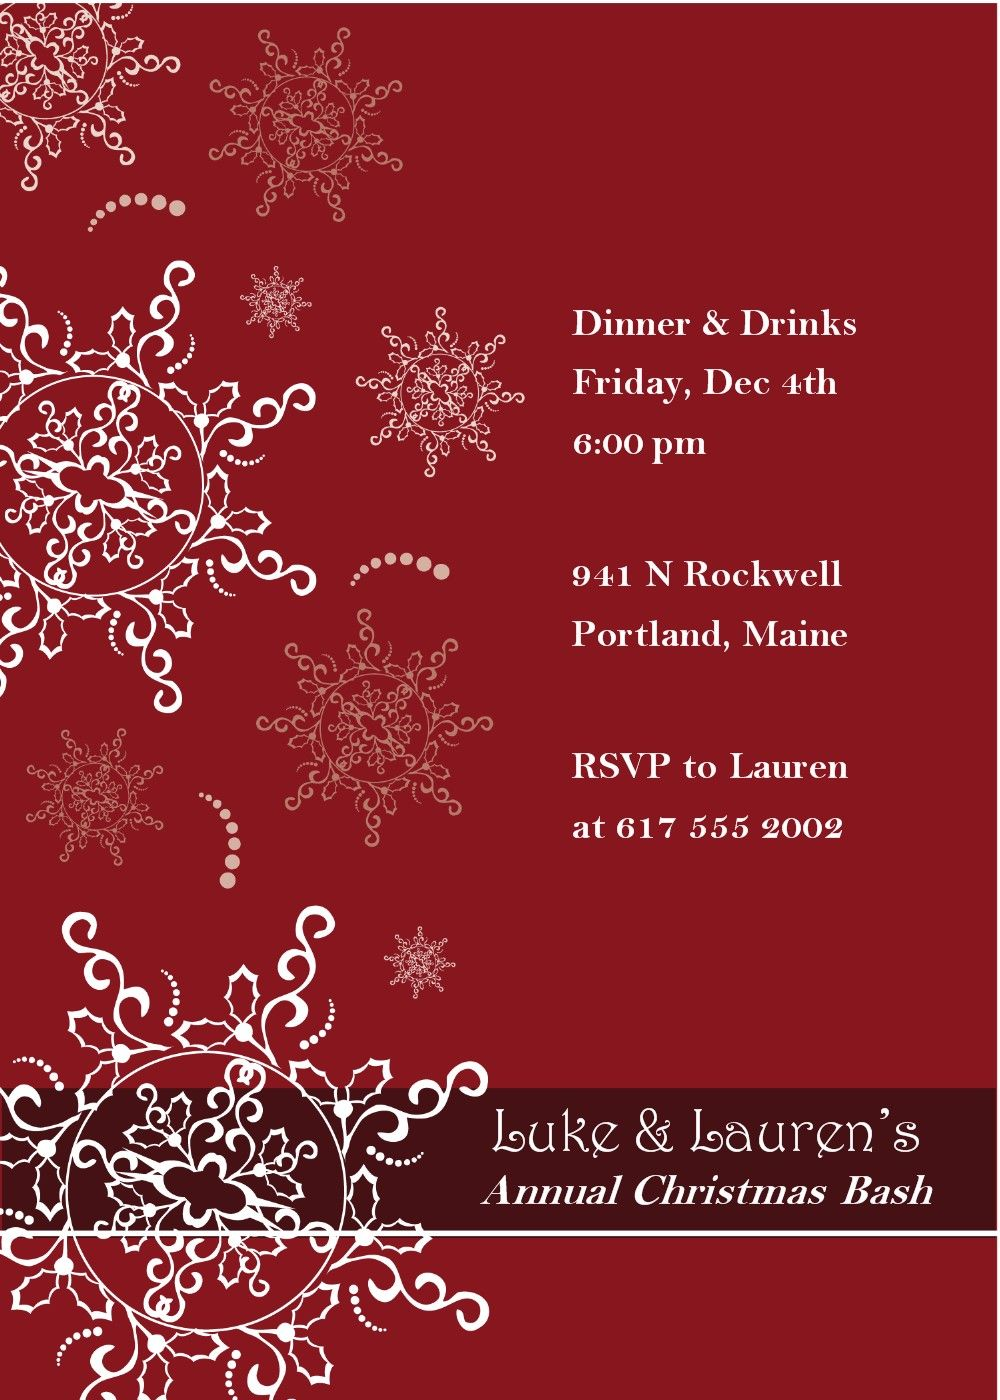 christmas party printable invitation templates invitation find cash advance debt consolidation and more at get the best of insurance or credit report browse our section on cell phones or learn about life